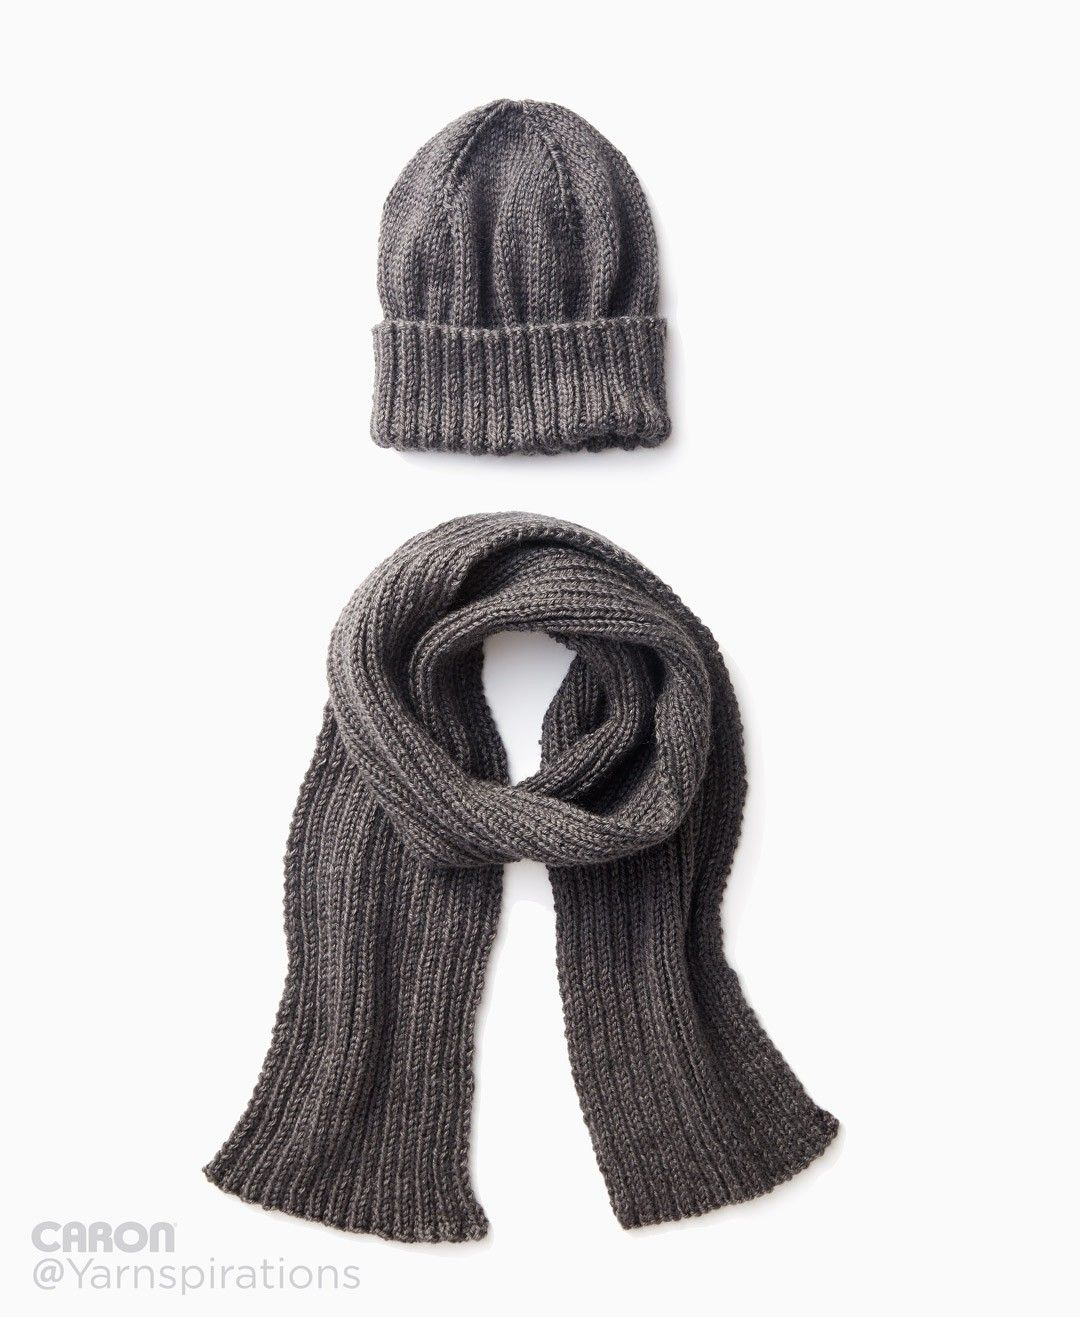 Hat and scarf set 2016 christmas gift guide patterns free hat and scarf set 2016 christmas gift guide patterns free patterns yarnspirations bankloansurffo Gallery